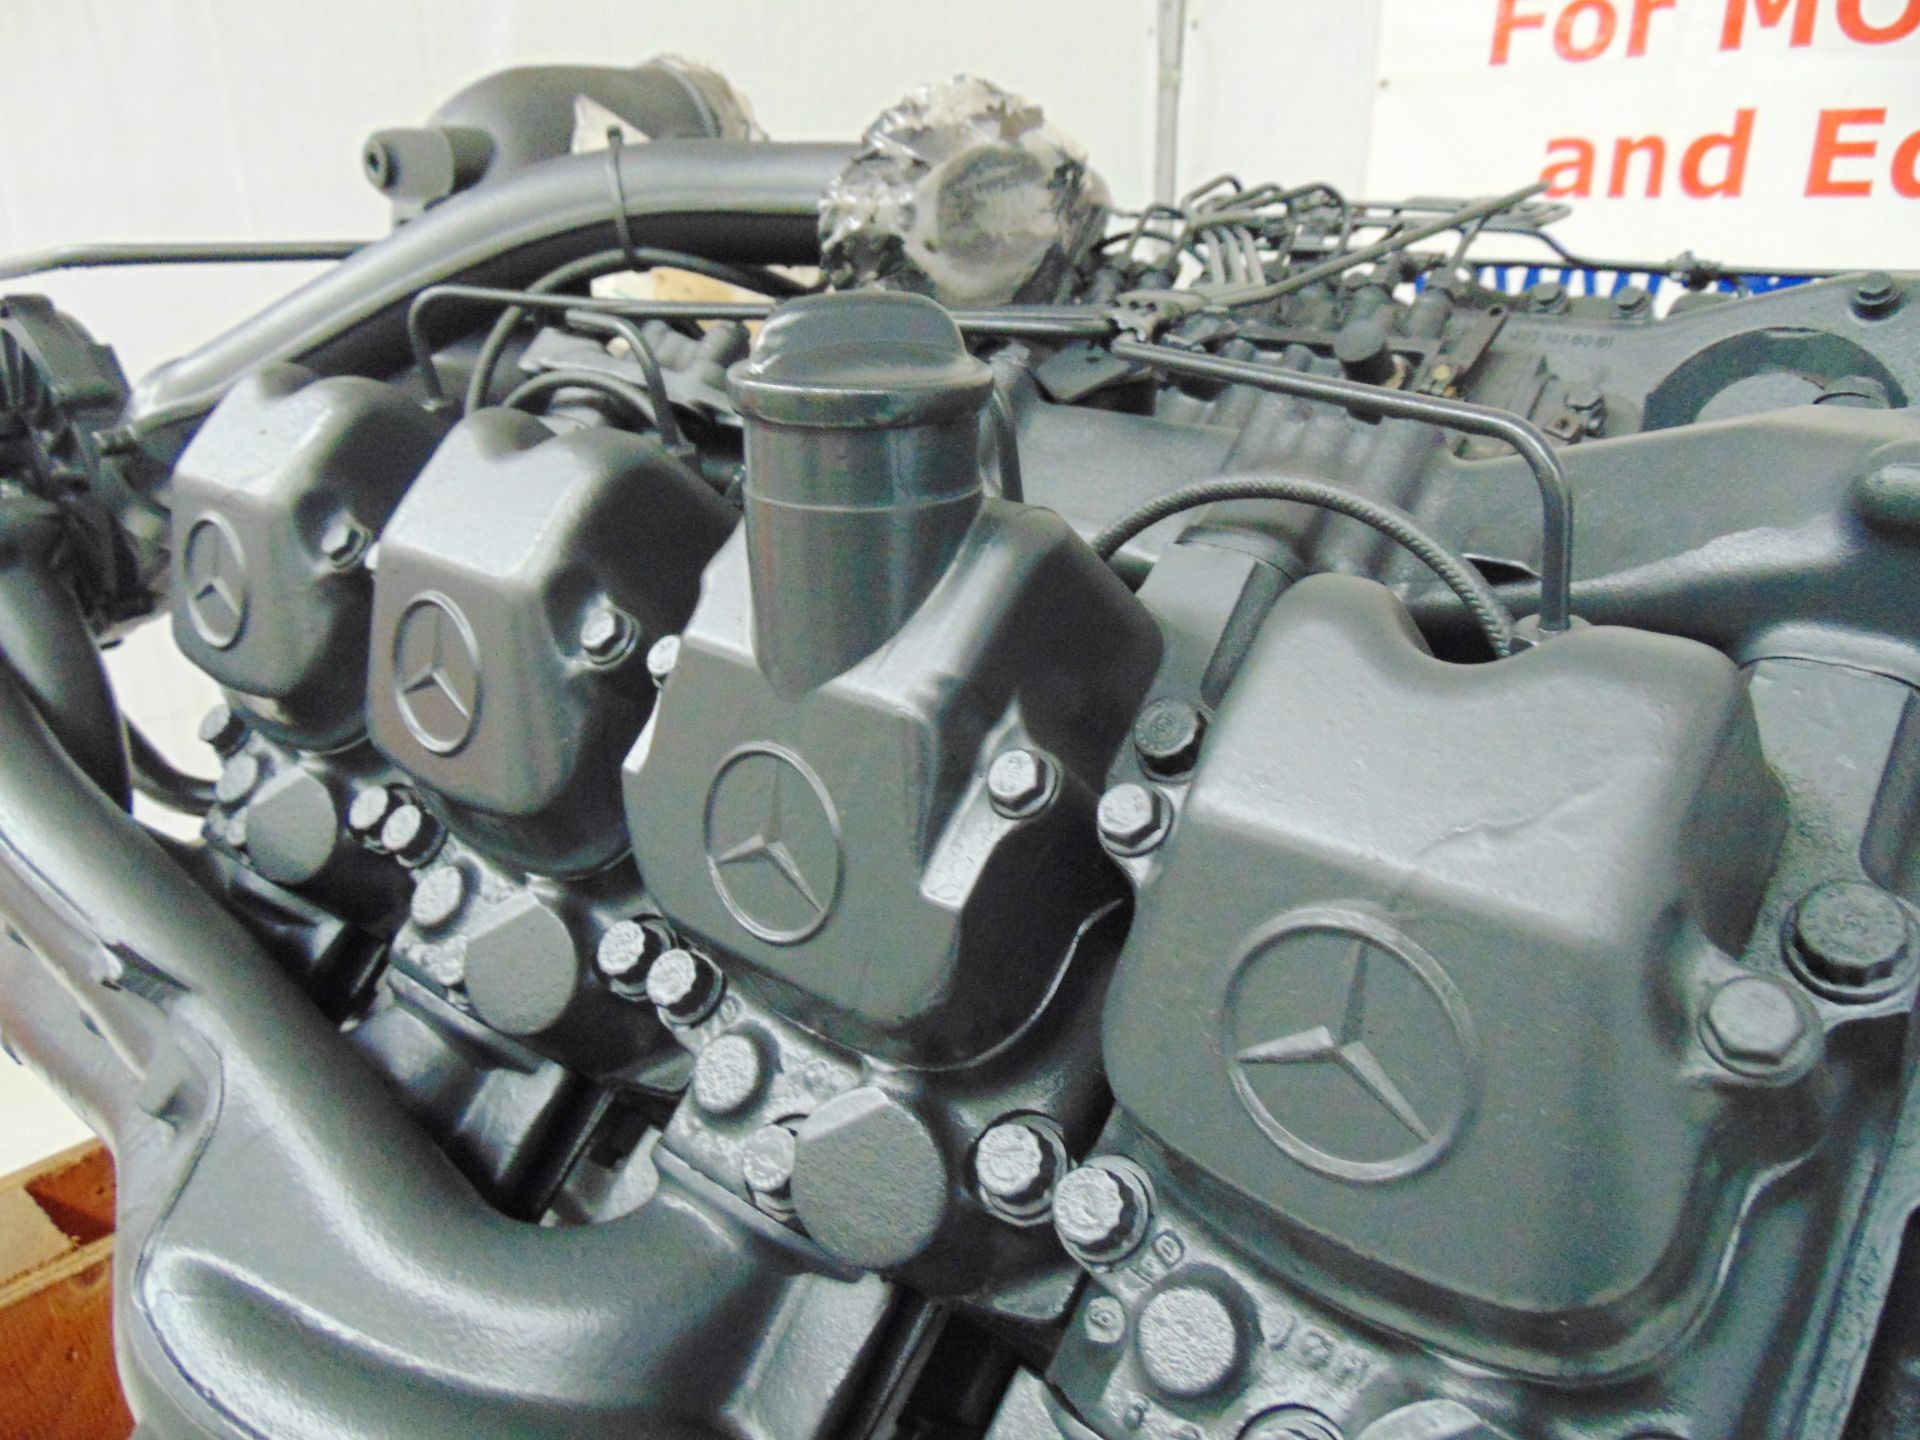 Lot 5 - Brand New & Unused Mercedes-Benz OM442LA V8 Twin Turbo Diesel Engine